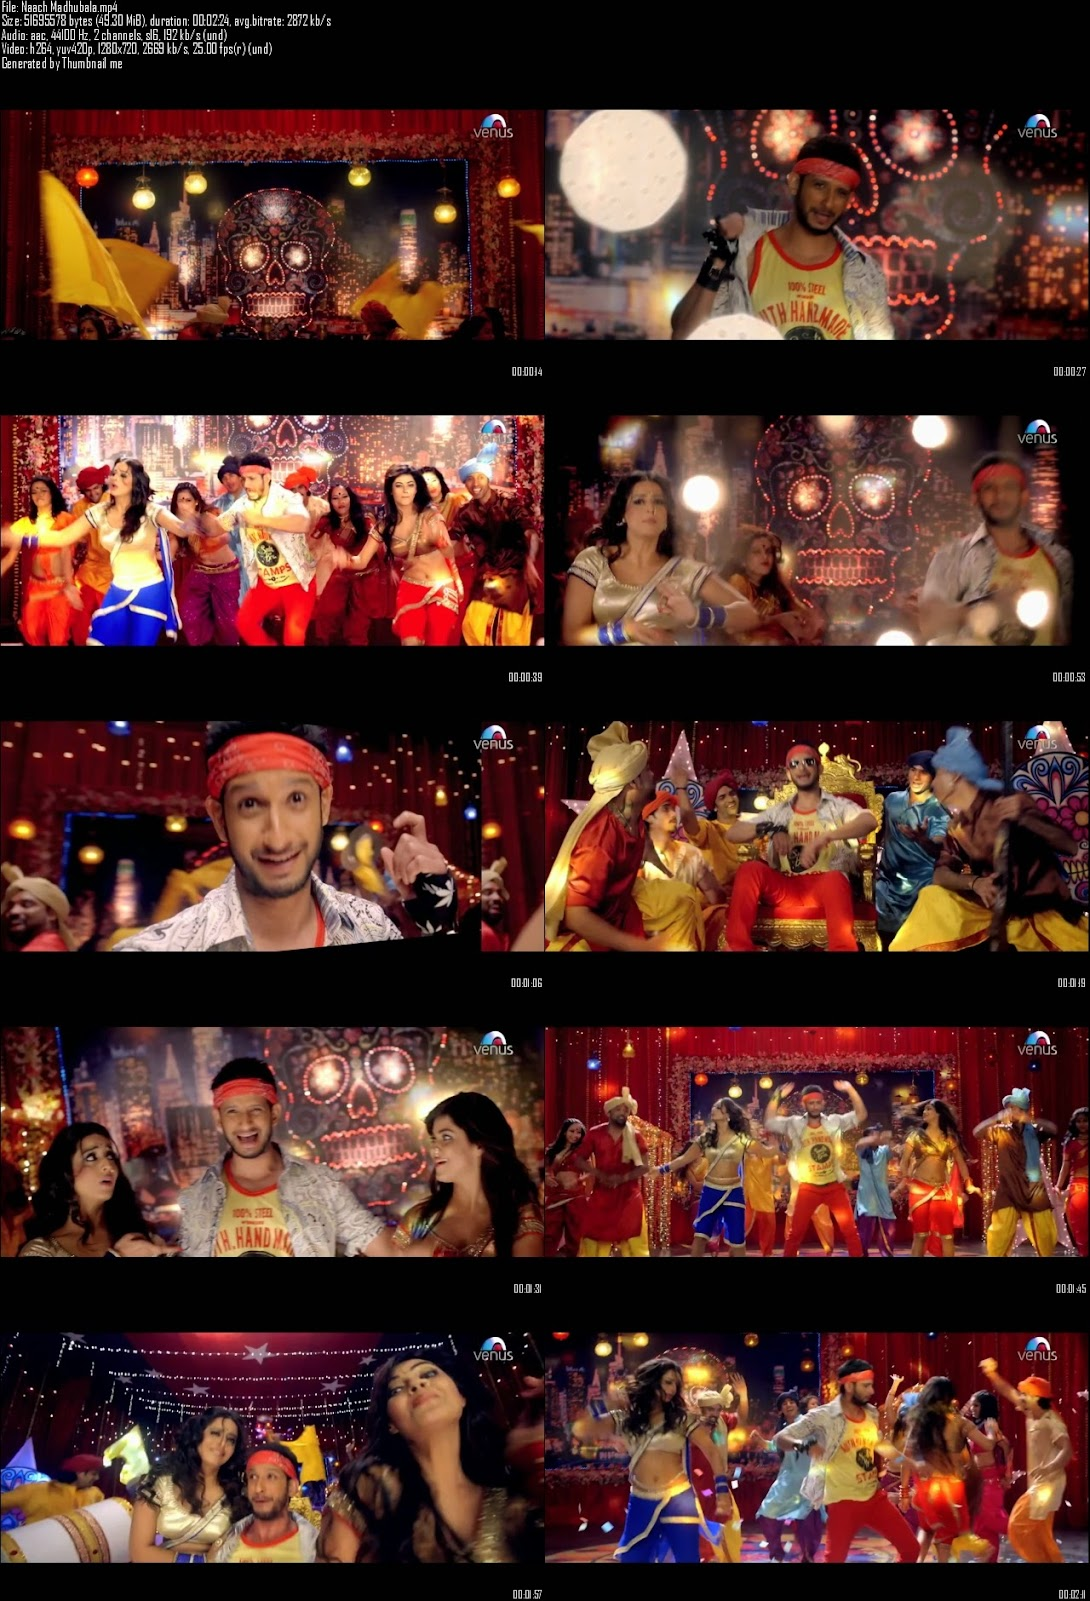 Naach Madhubala – Gang Of Ghosts (2014) Video 720P HD | Naach Madhubala – Gang Of Ghosts (2014) Video, Naach Madhubala – Gang Of Ghosts ,world4free | Naach Madhubala – Gang Of Ghosts (2014) Video Song.